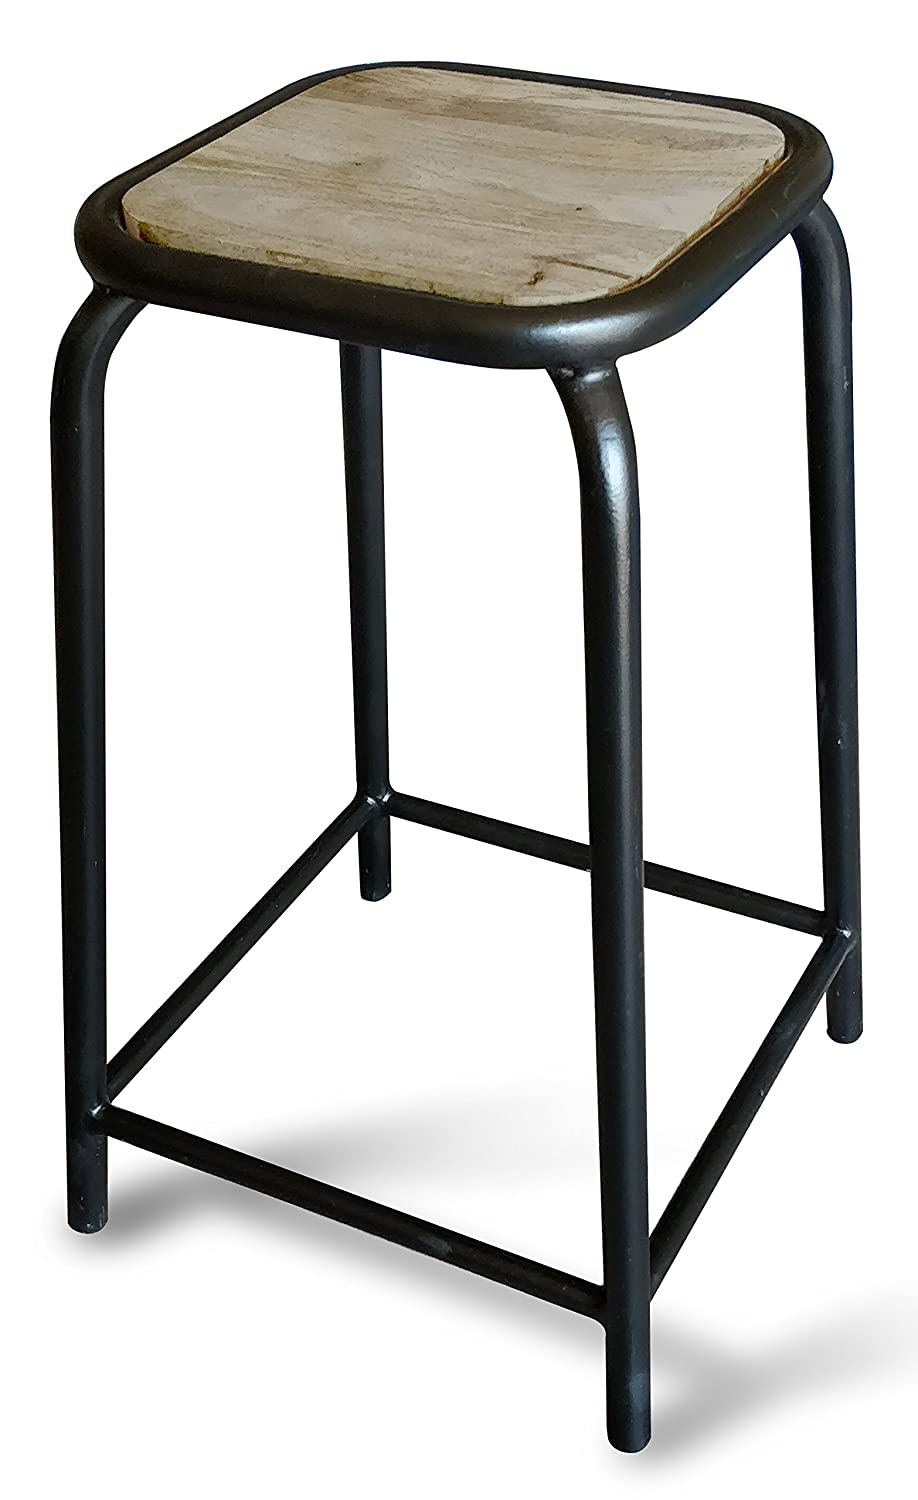 Wooden top bar stool with metal base in black powder coating amazon in home kitchen